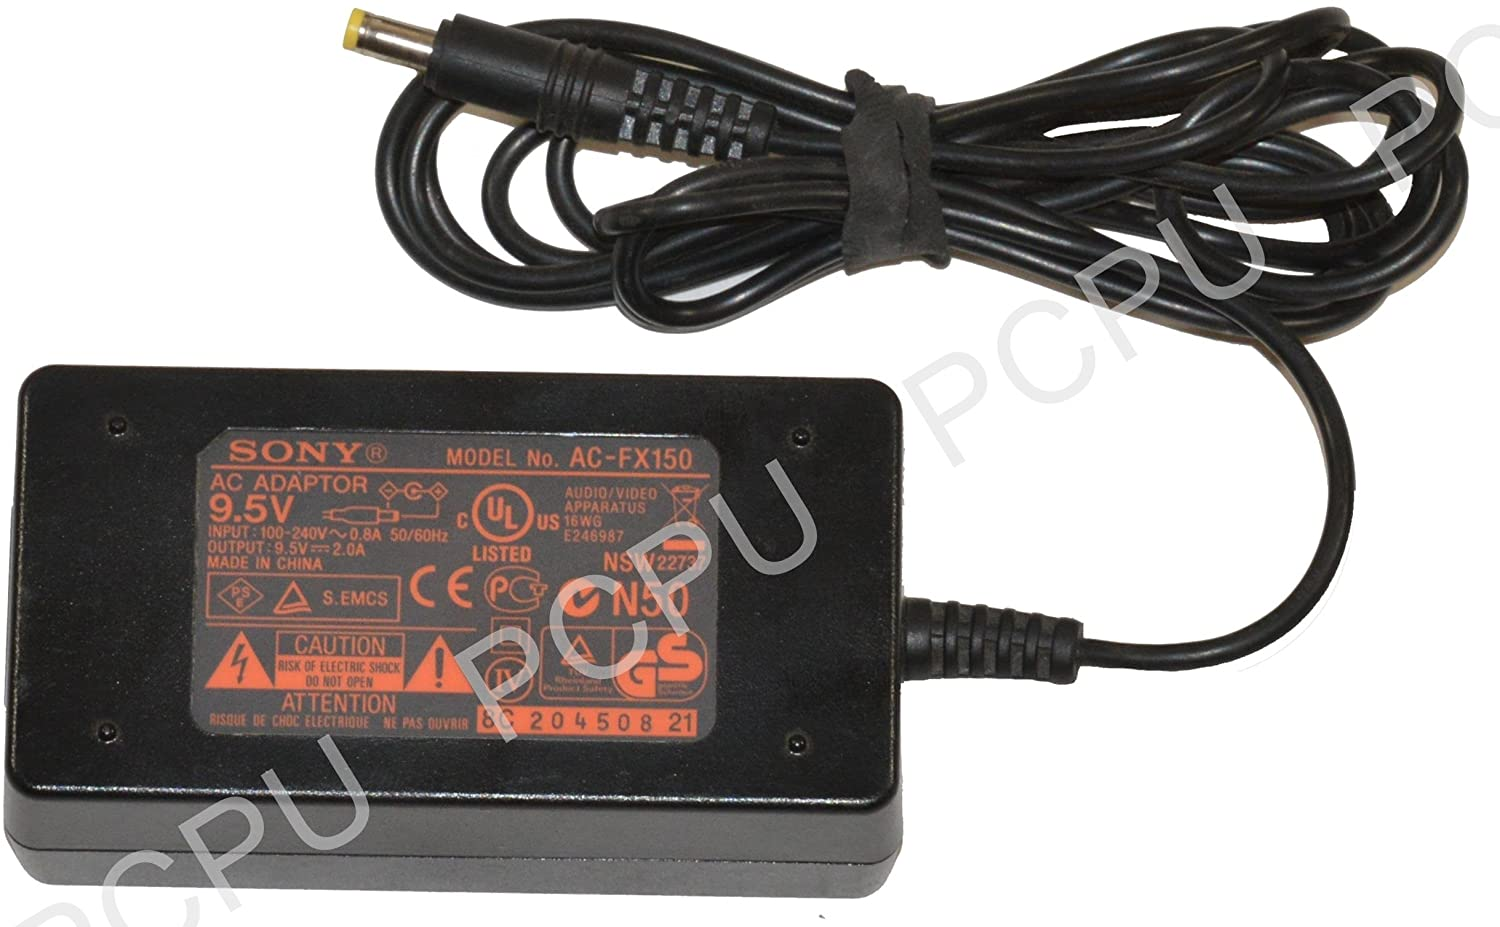 AC-FX150 AC Adapter AC-FX150 9.5V 2.0A Original Power Charger